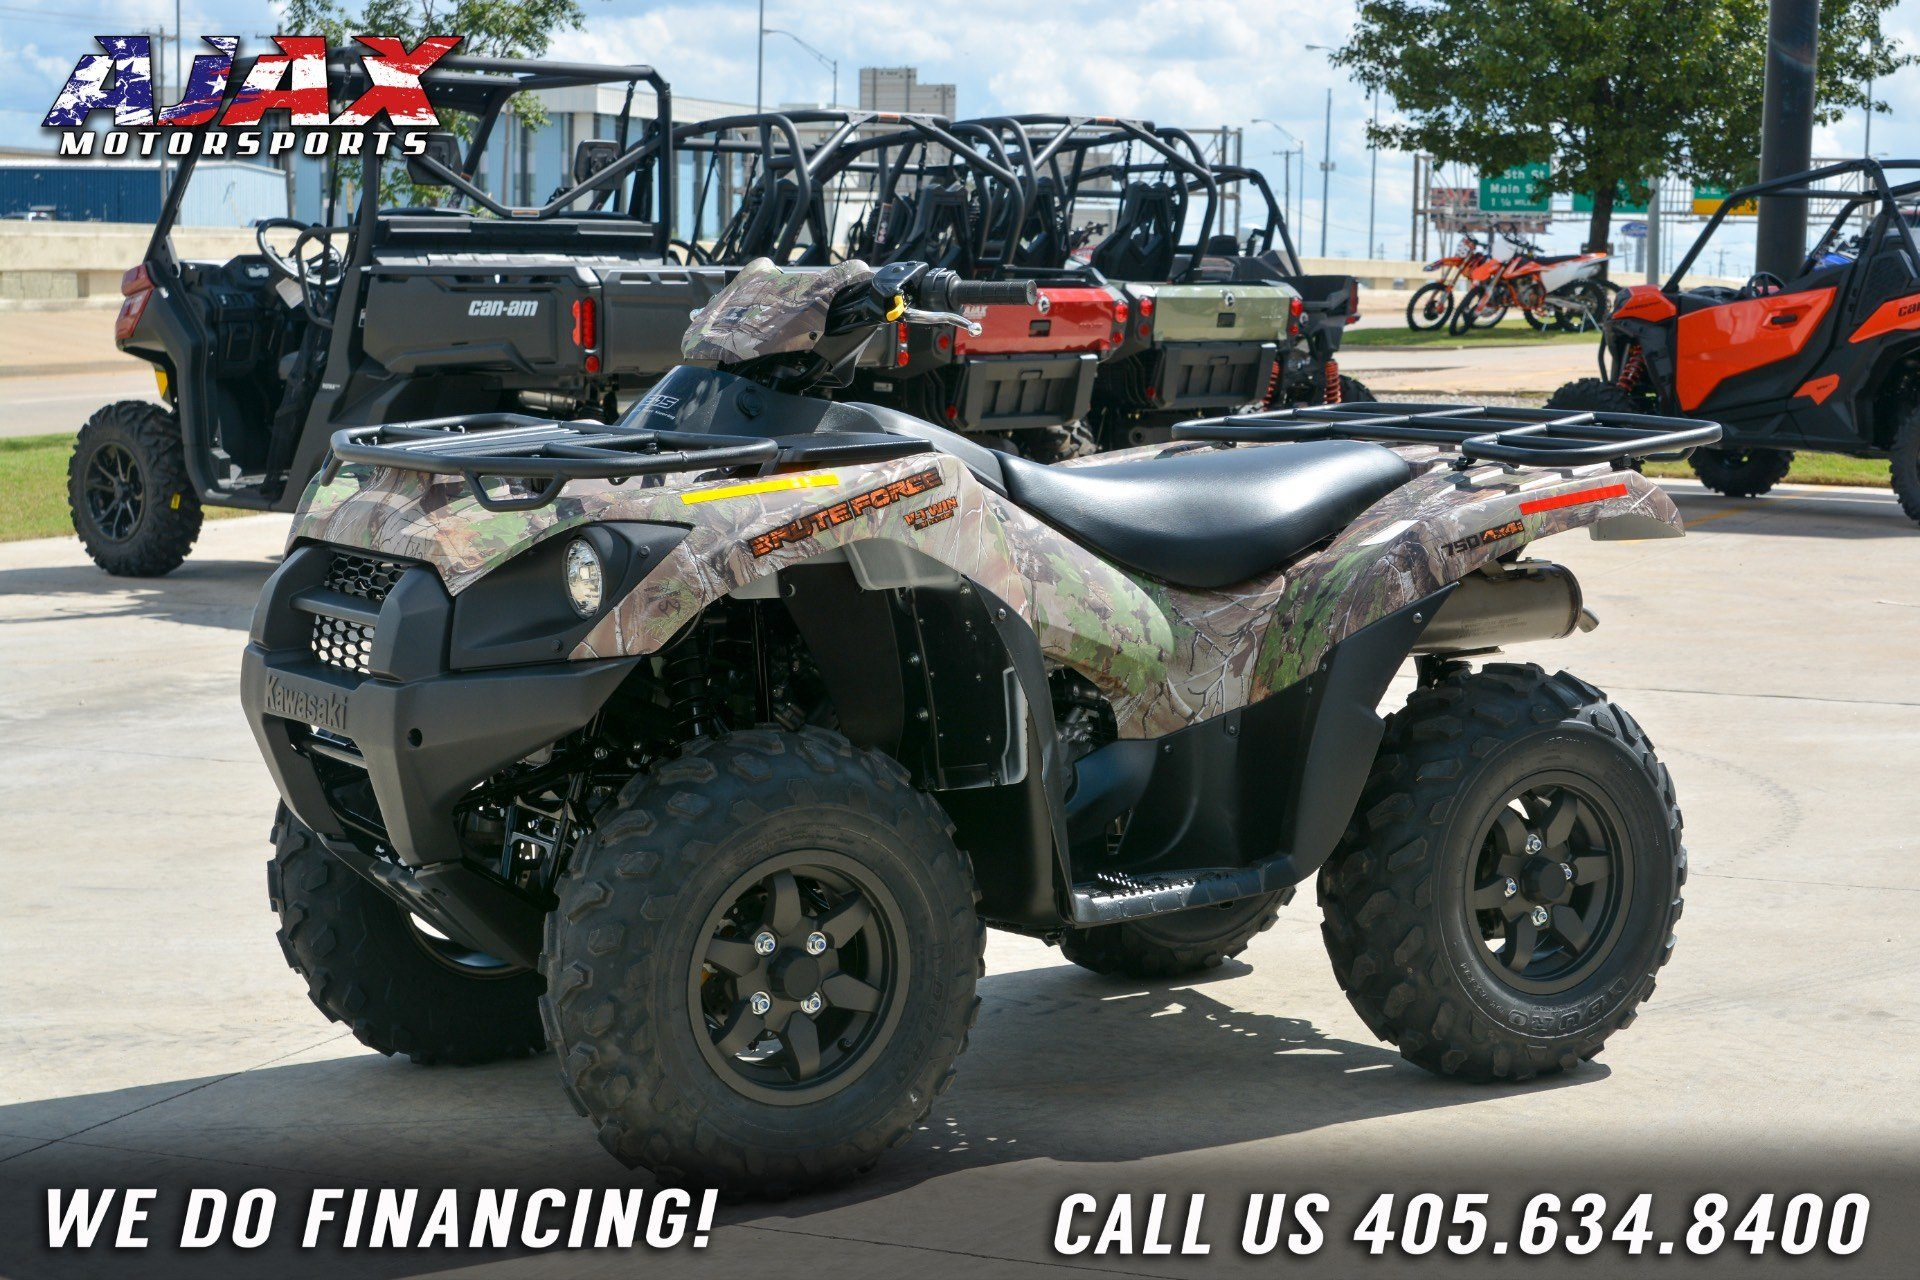 2019 Kawasaki Brute Force 750 4x4i EPS Camo in Oklahoma City, Oklahoma - Photo 8